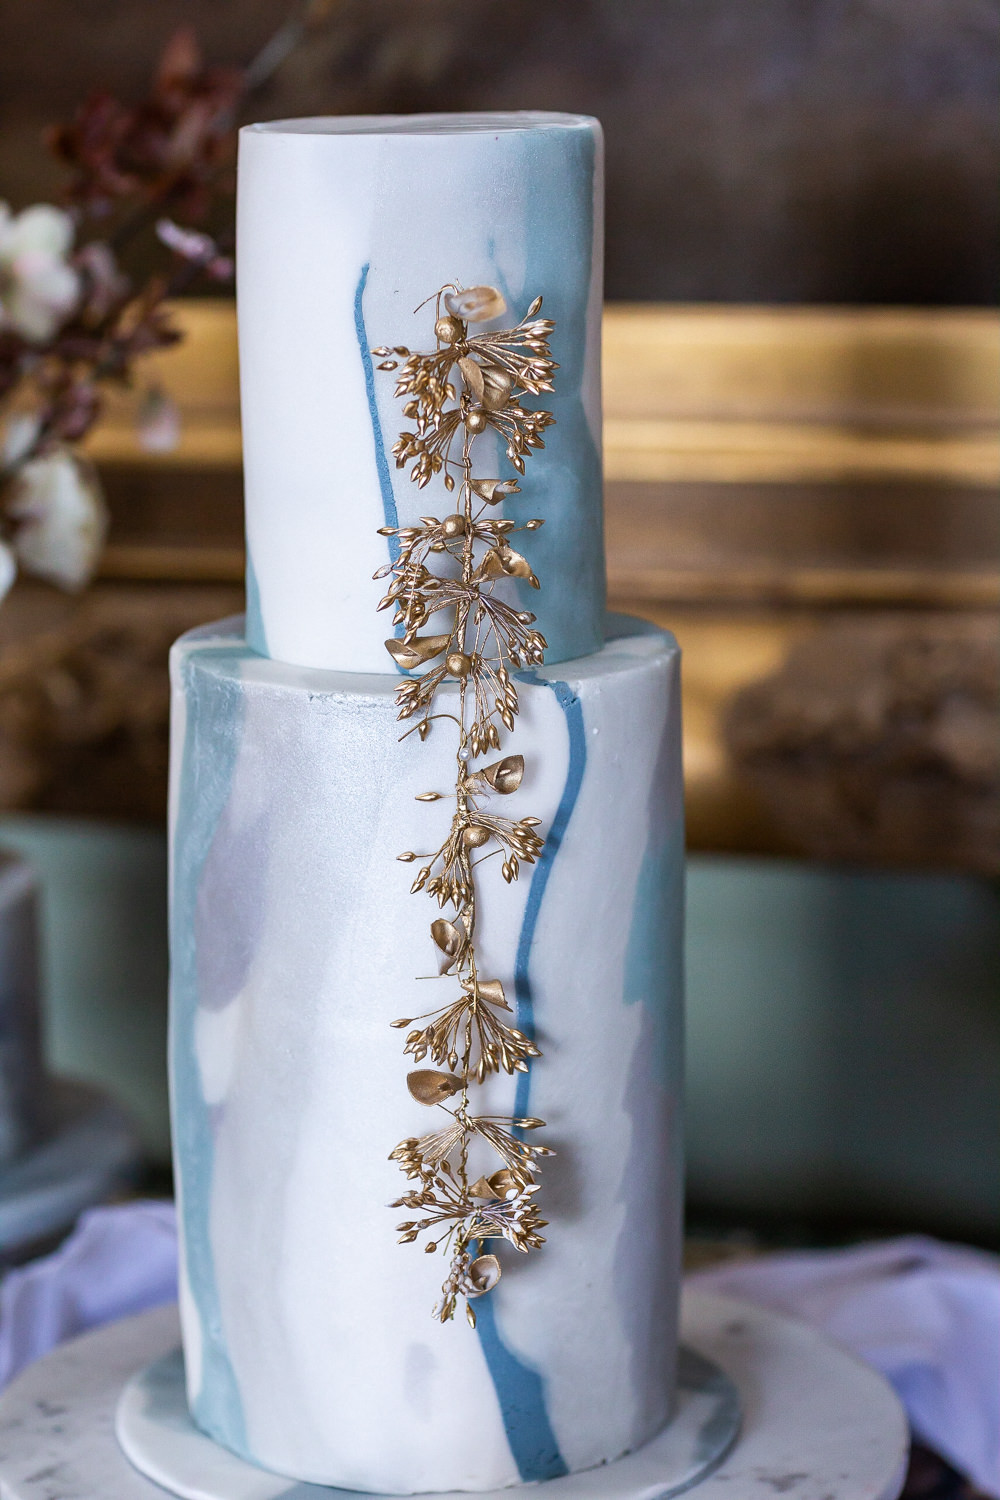 Modern Dance Ballet Inspired Fine Art Editorial Somerley House Cakes Dessert Table Kate Burt | Romantic Soft Wedding Ideas Siobhan H Photography